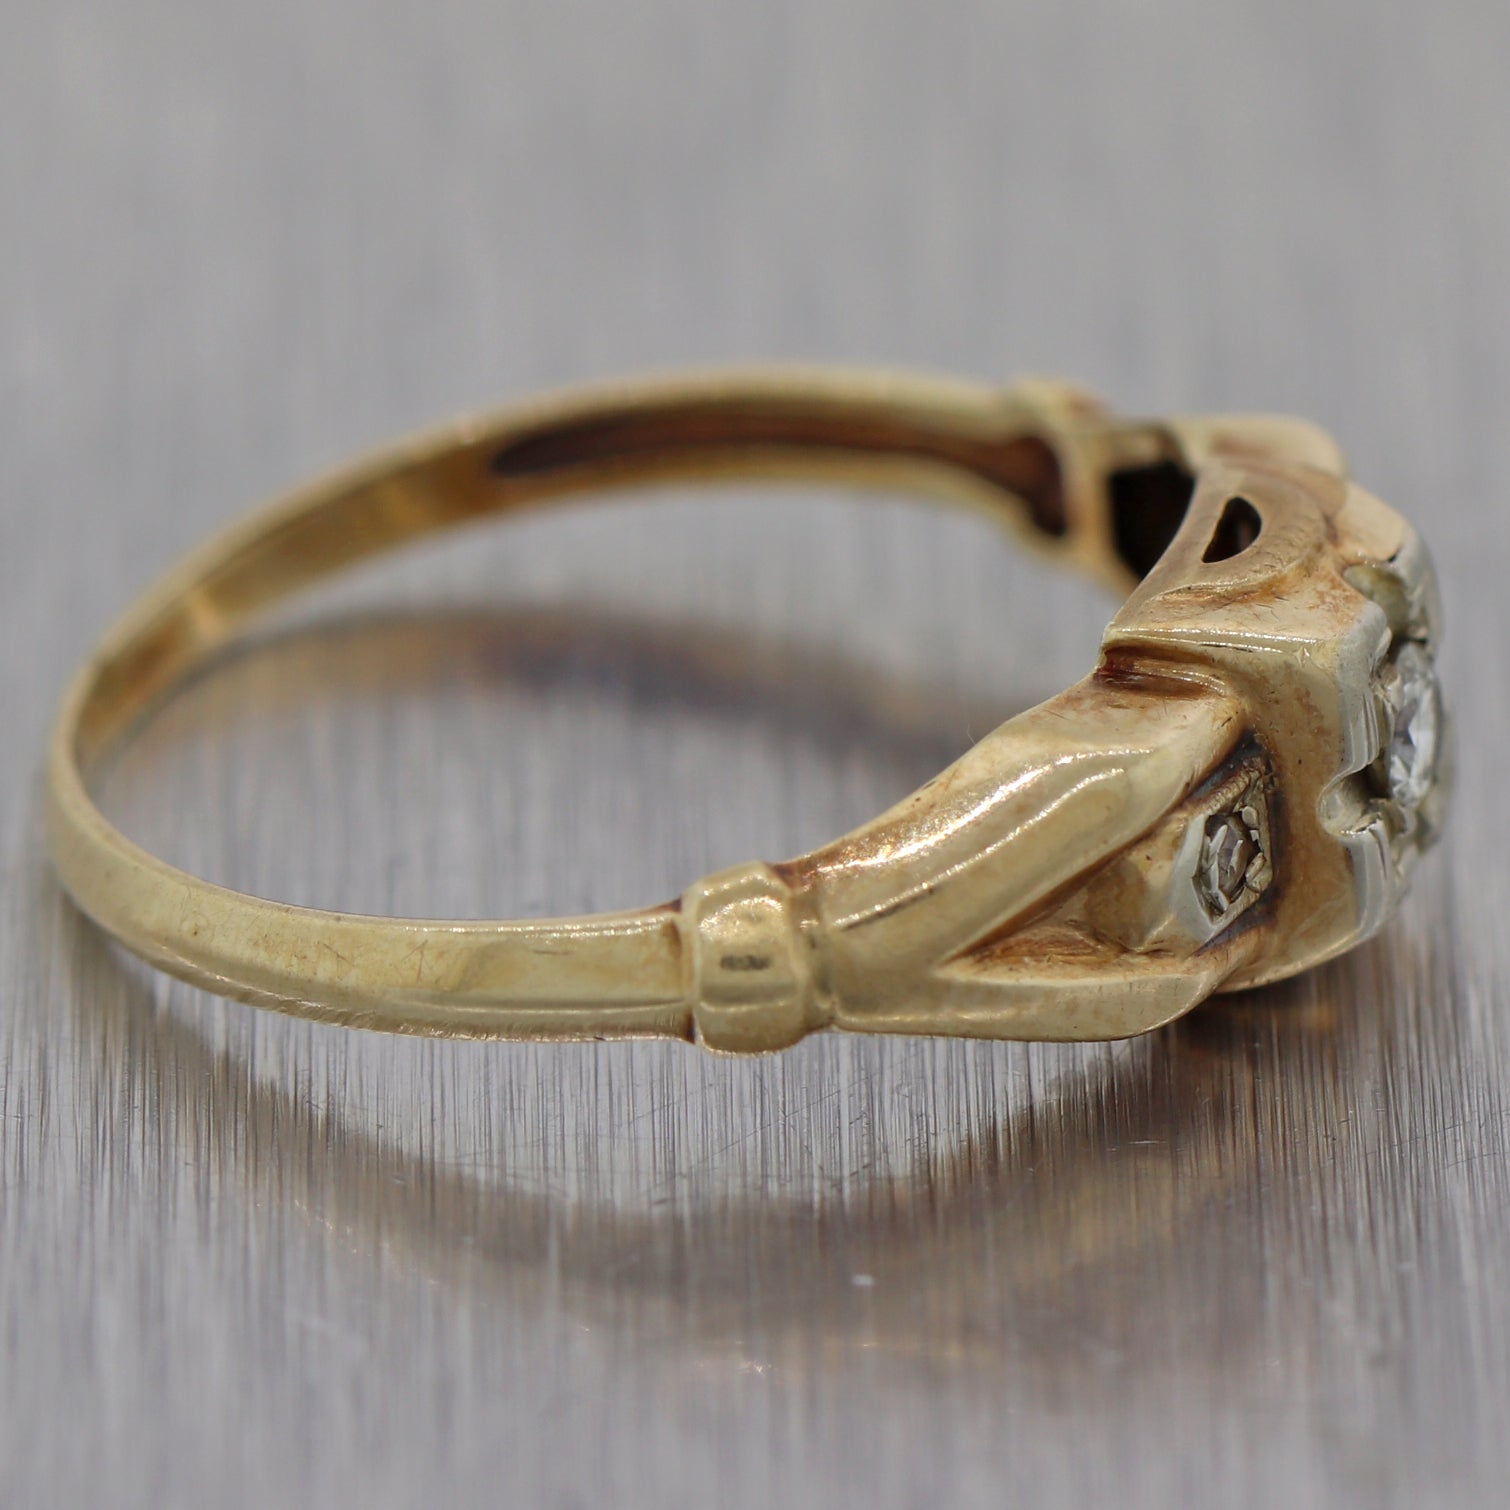 1930's Antique Art Deco 14k Yellow Gold 0.08ct Diamond Engagement Ring